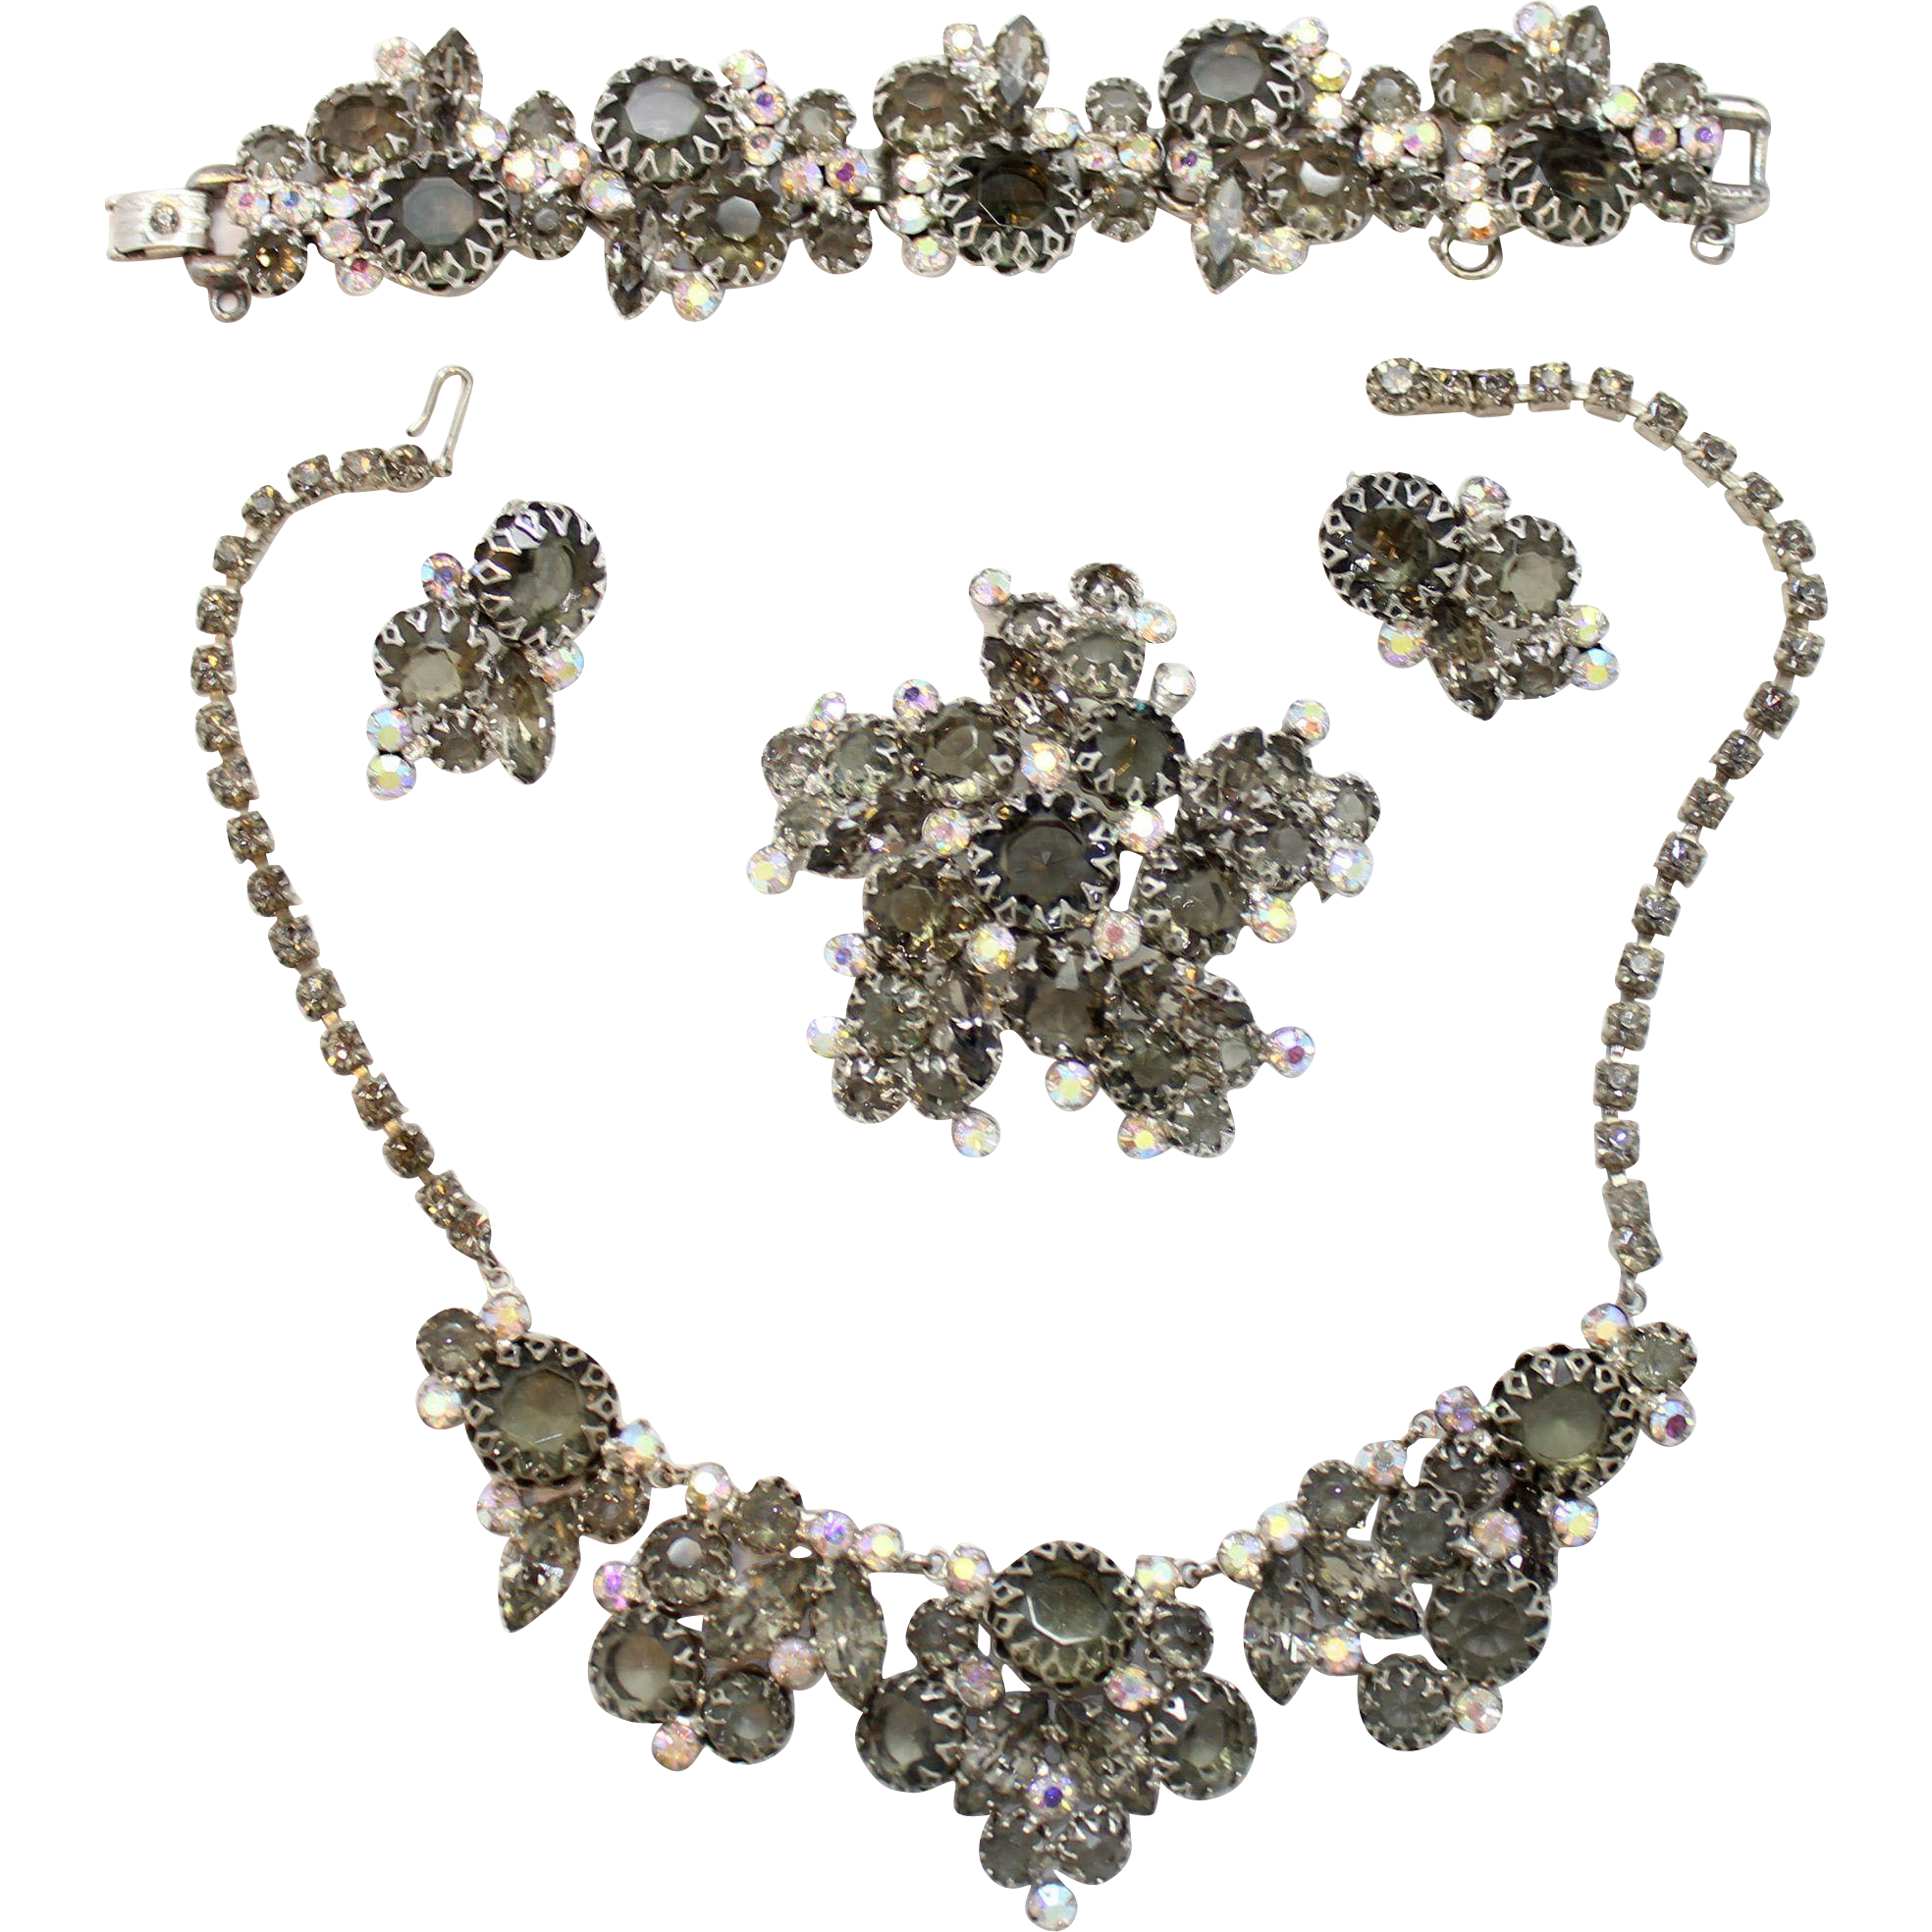 Vintage Juliana Black Diamond (Gray) Rhinestone Multi-Prong Necklace, Bracelet, Brooch and Earrings Grand Parure